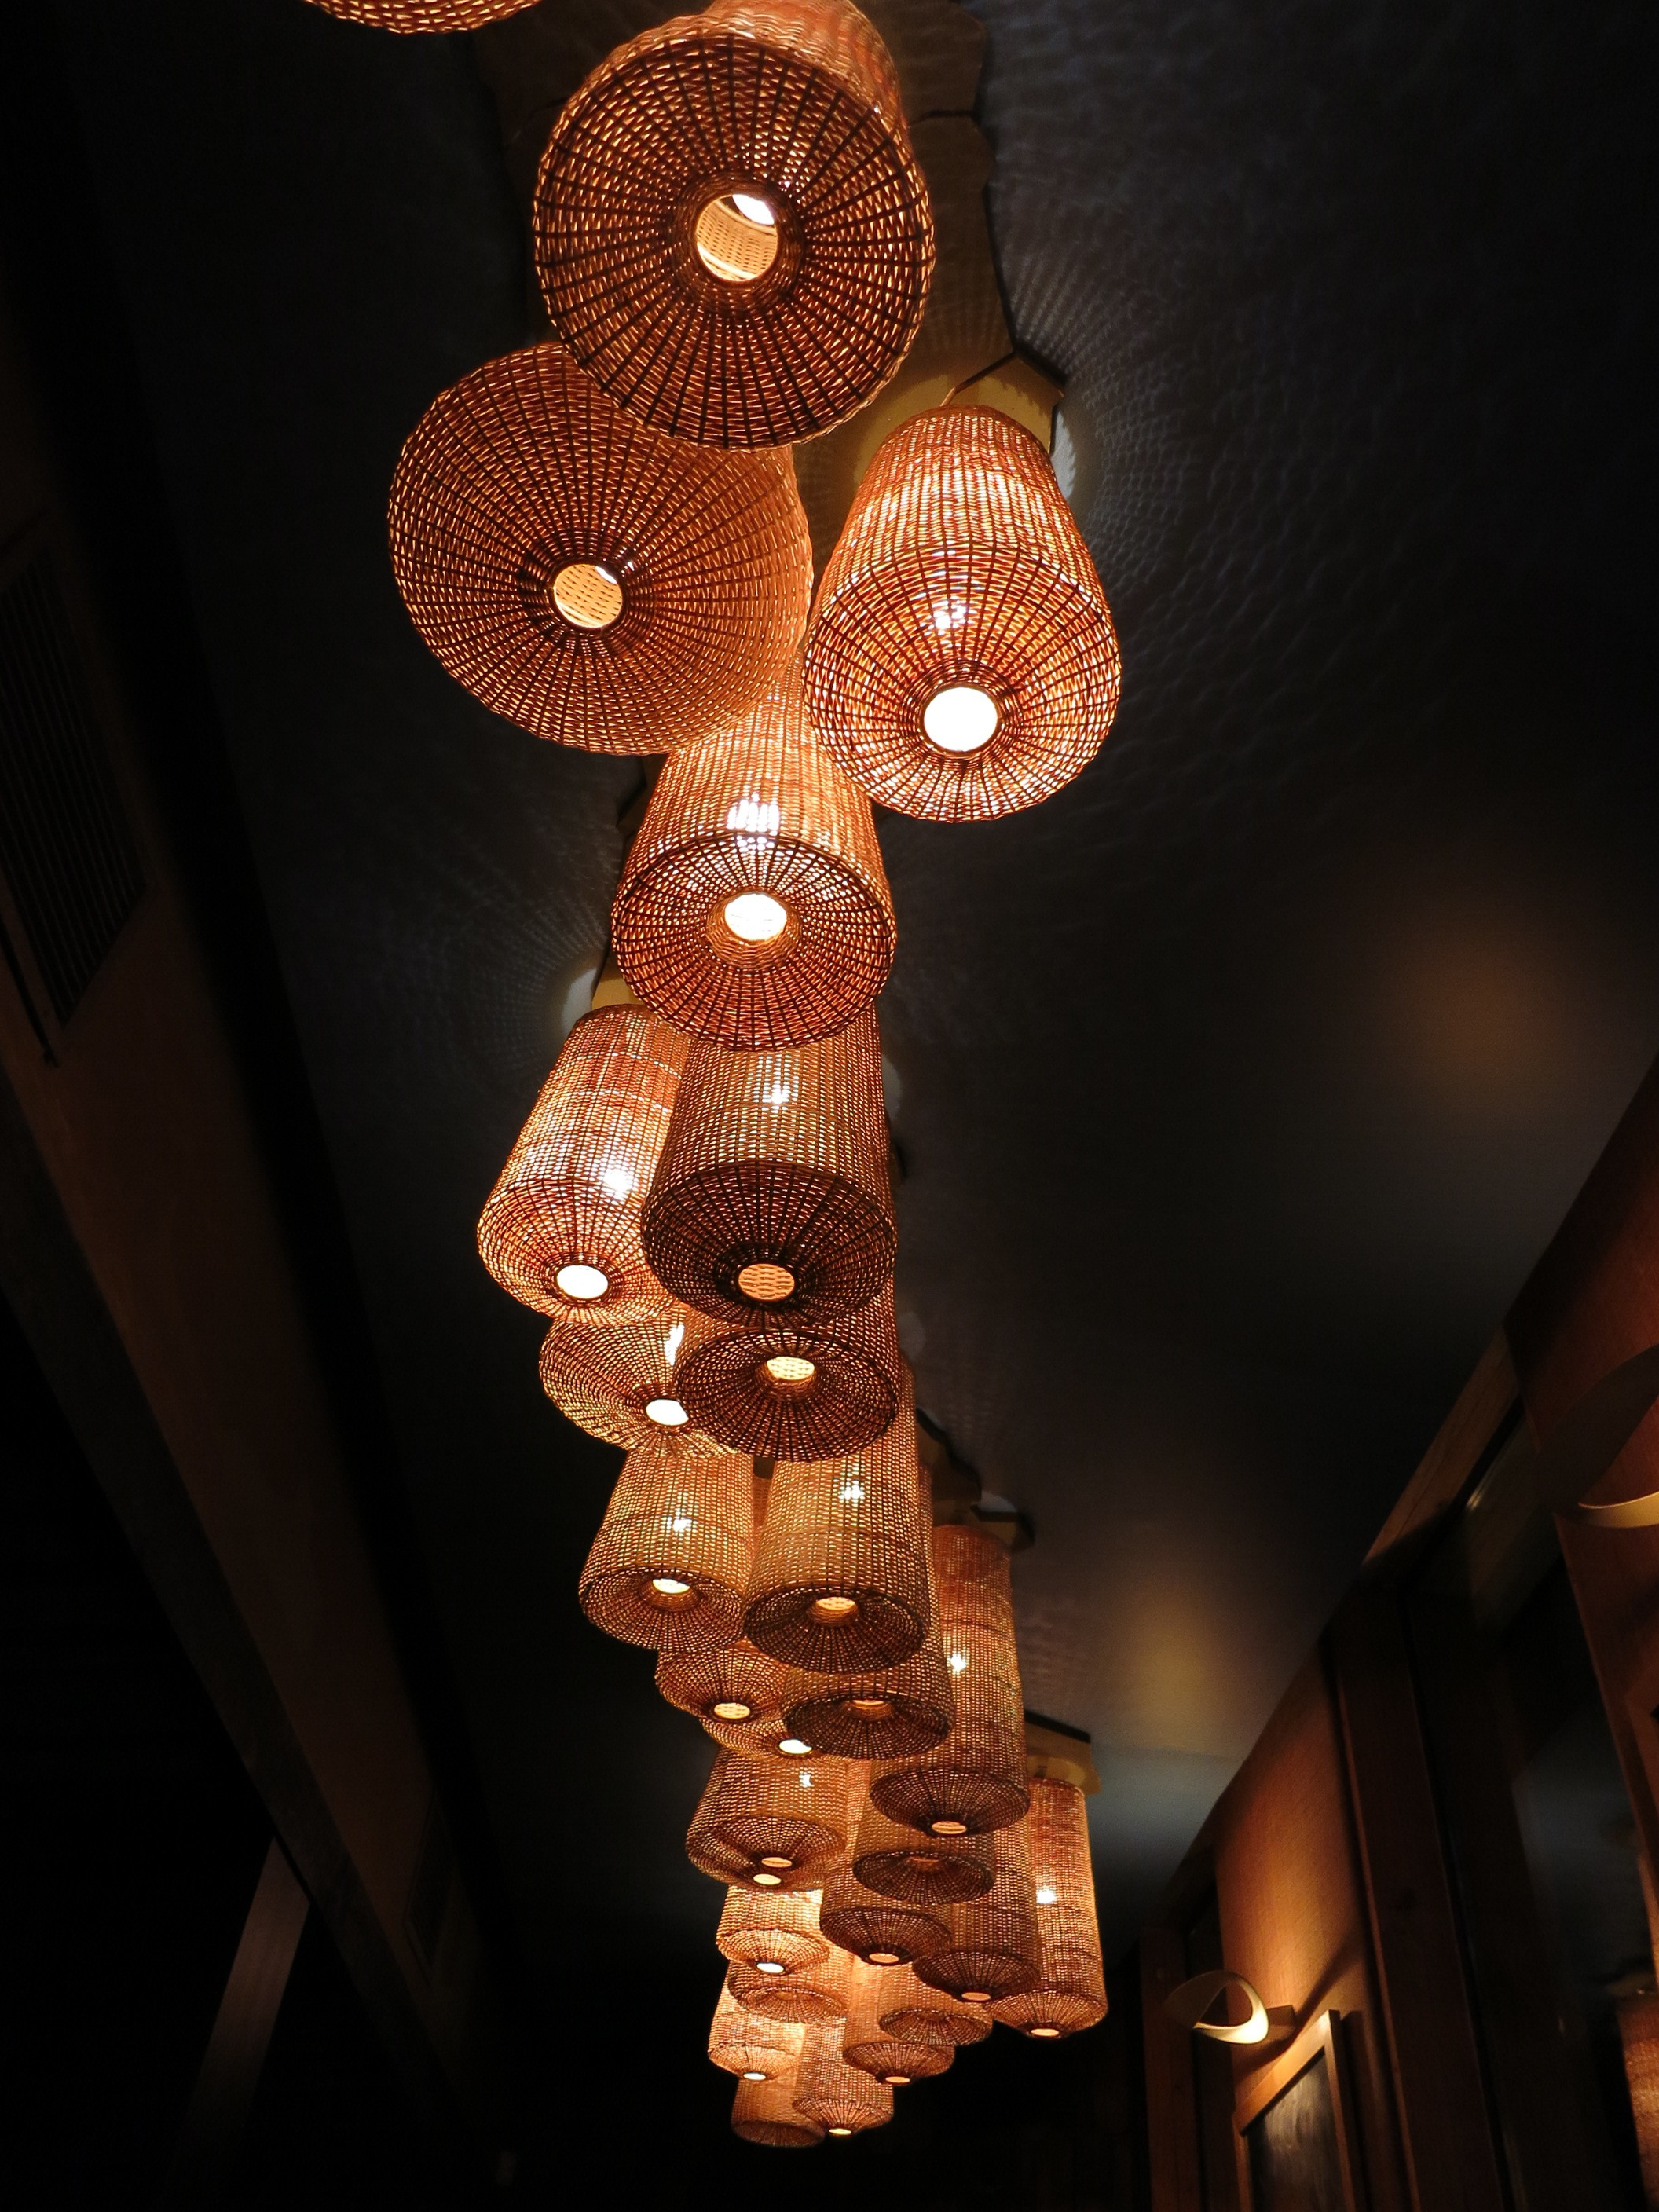 These lamps were mounted to the ceiling in the shape of Chile